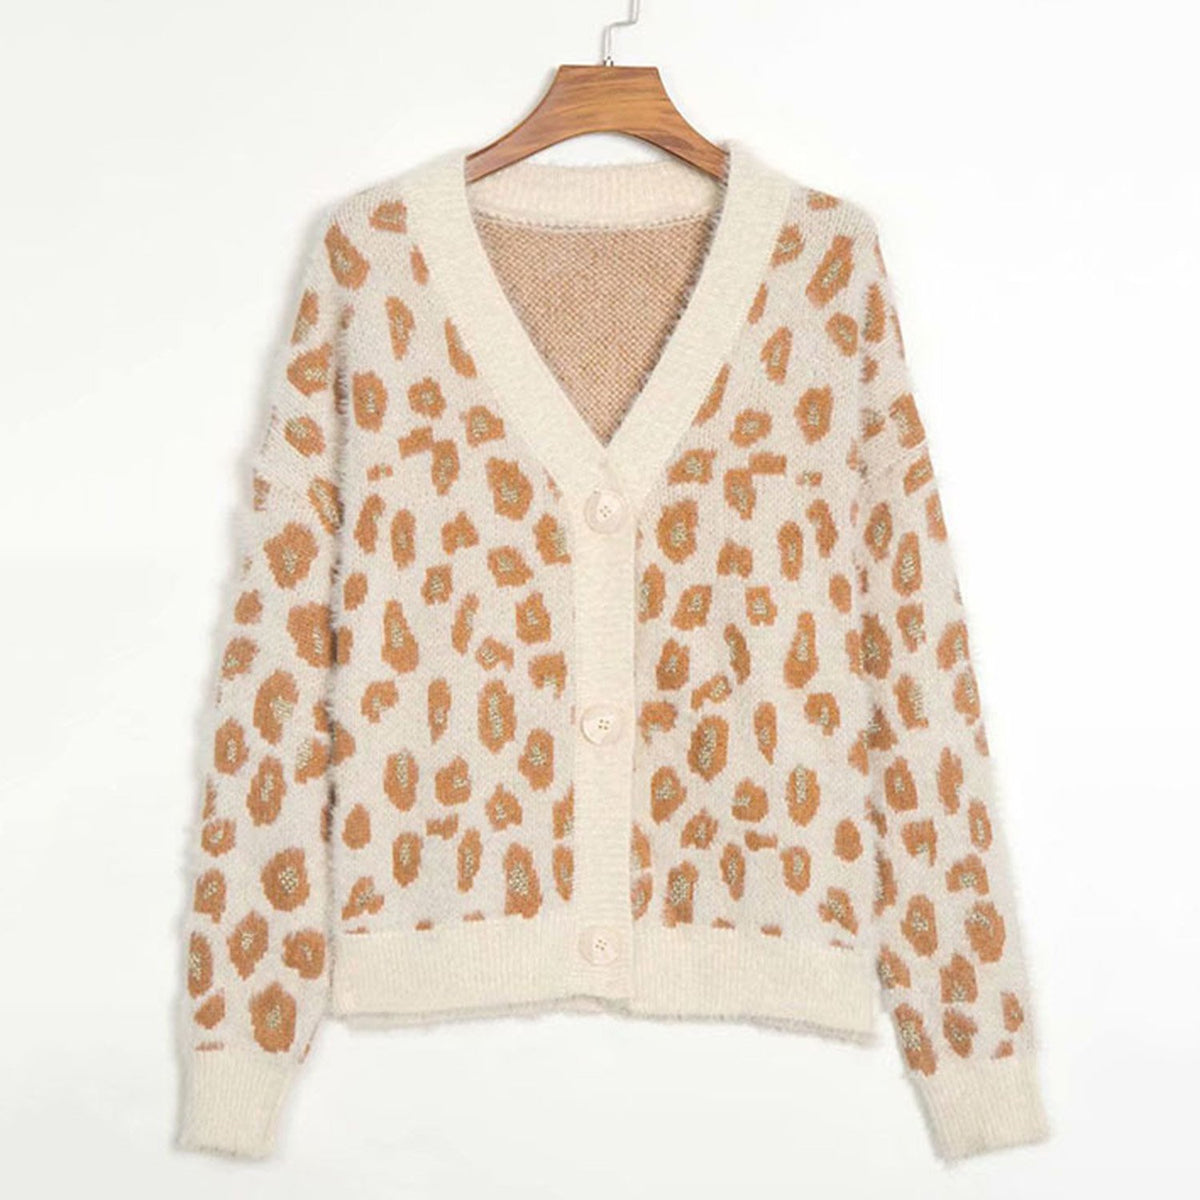 Leopard V Neck Knit Cardigan - worthtryit.com